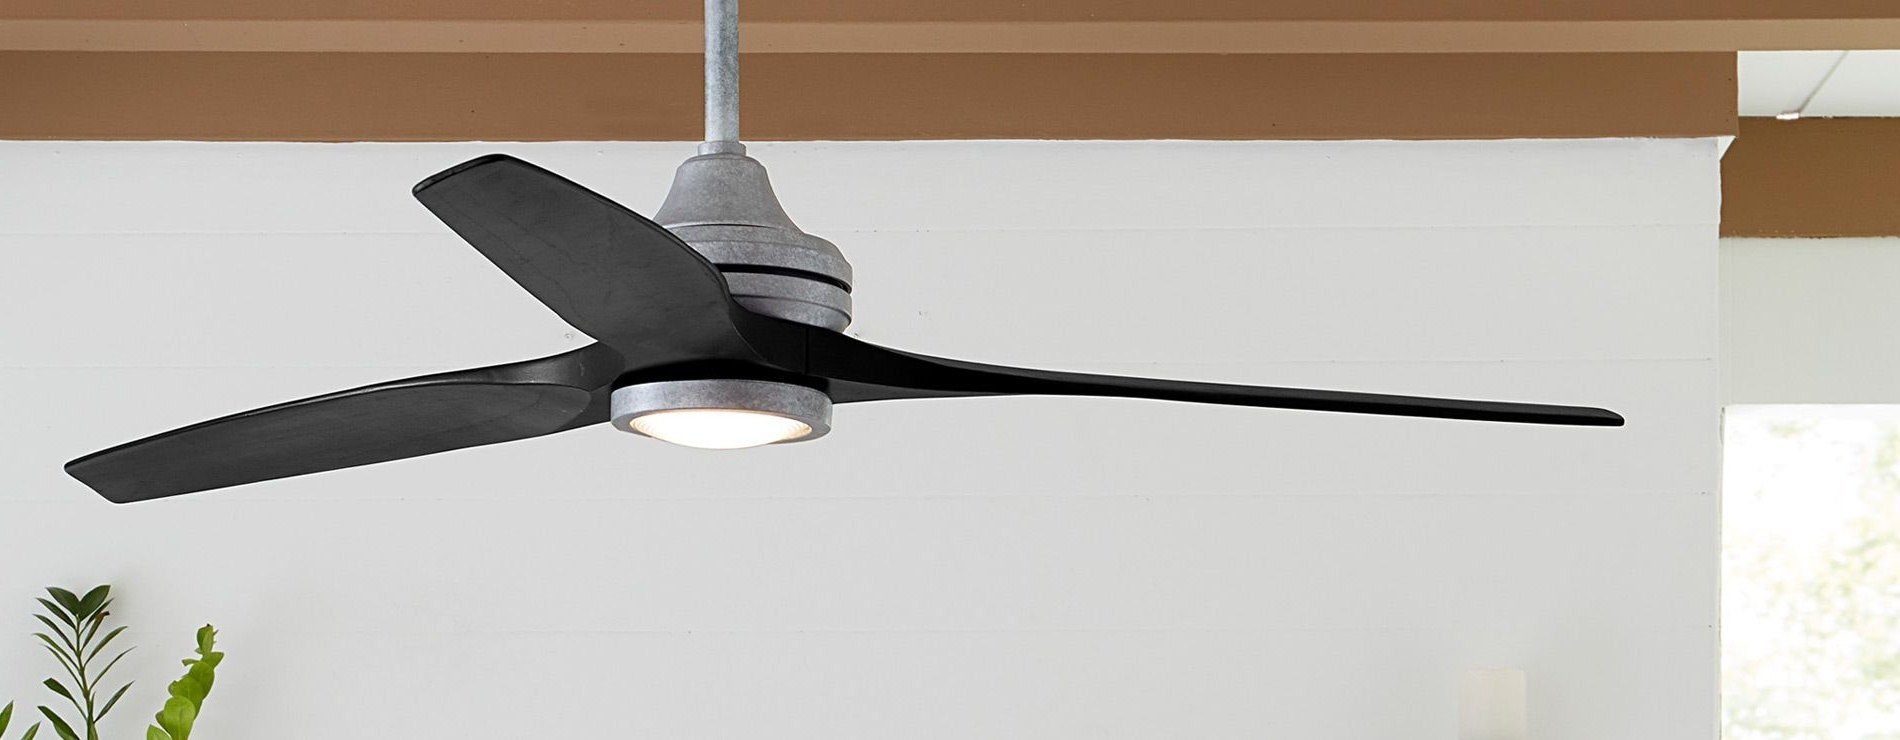 2018 Fanimation :: Home Regarding Victorian Outdoor Ceiling Fans (View 9 of 20)